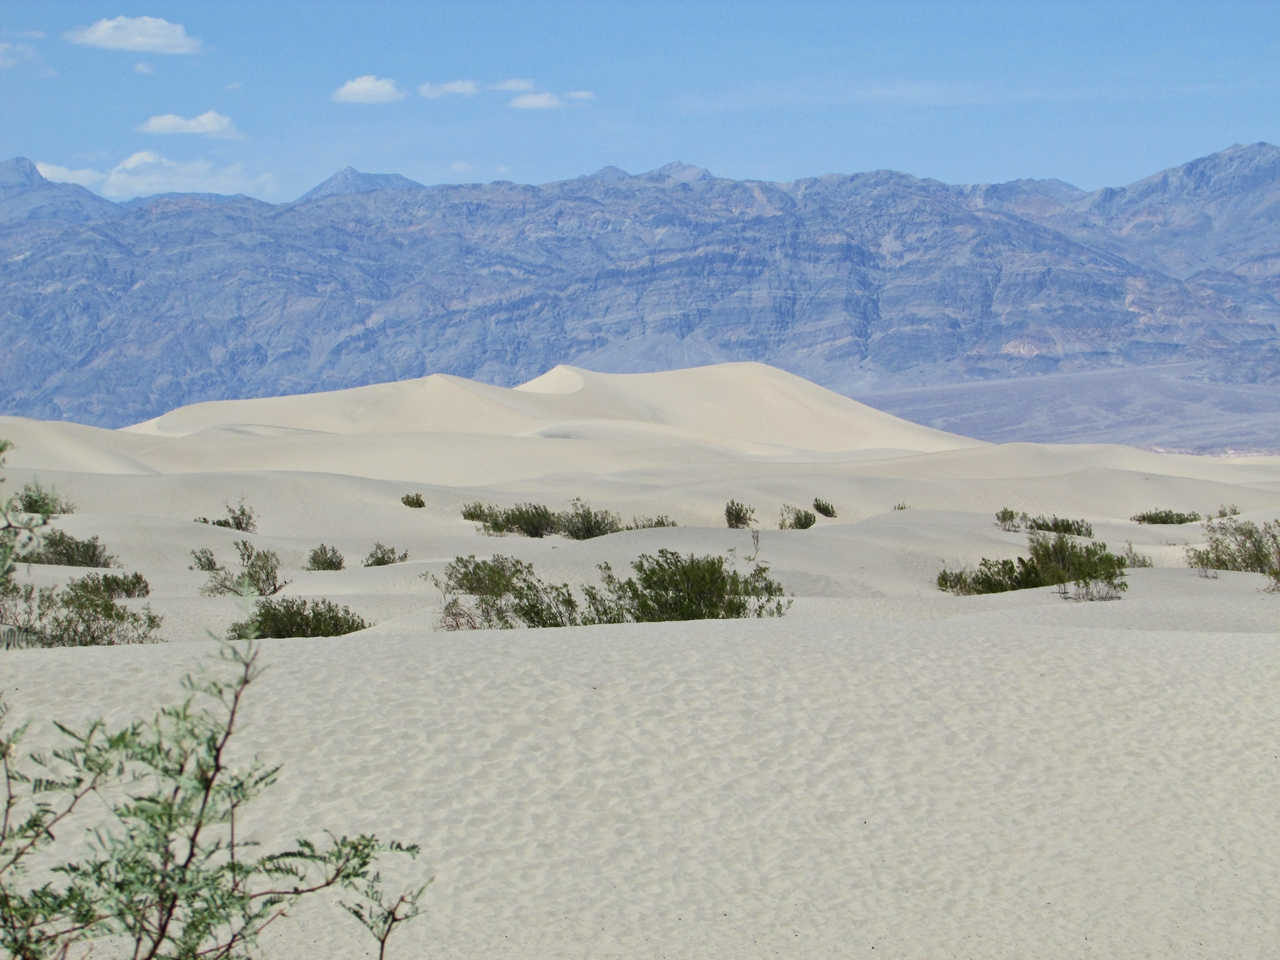 Westküste USA Rundreise - Death Valley Mesquite Sand Dunes - Fashionladyloves